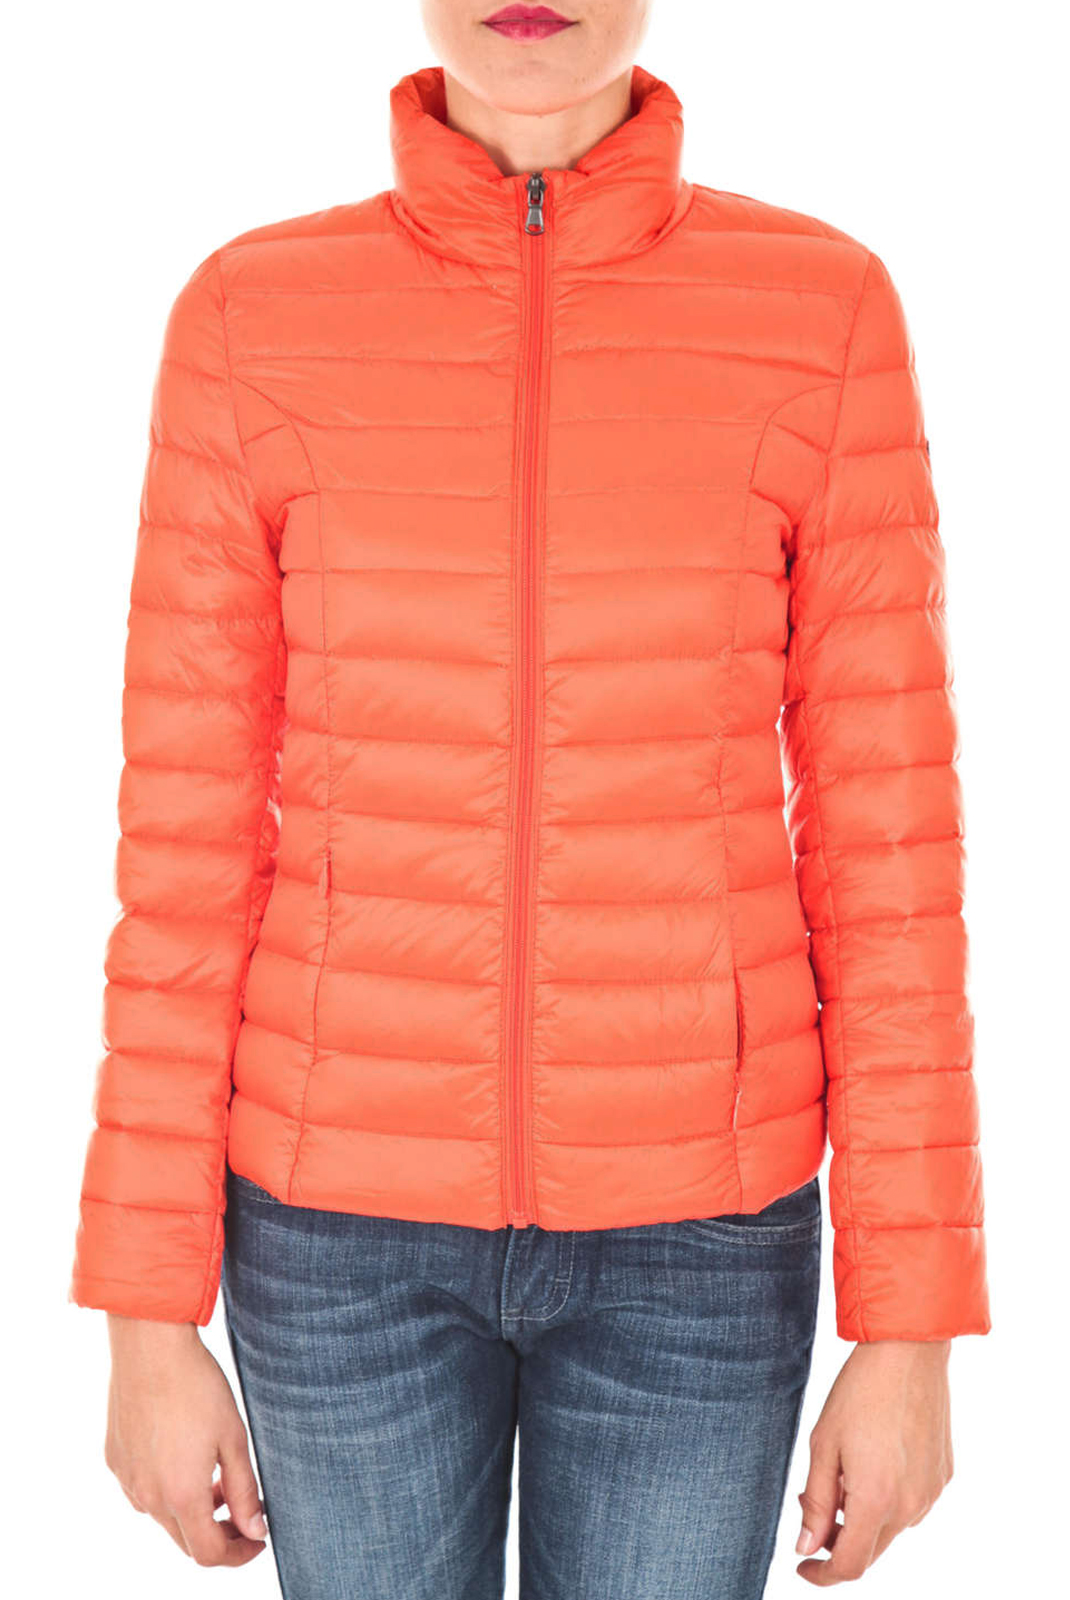 Blouson Just Orange Cha 700 Over Top The Femme 05rUq0